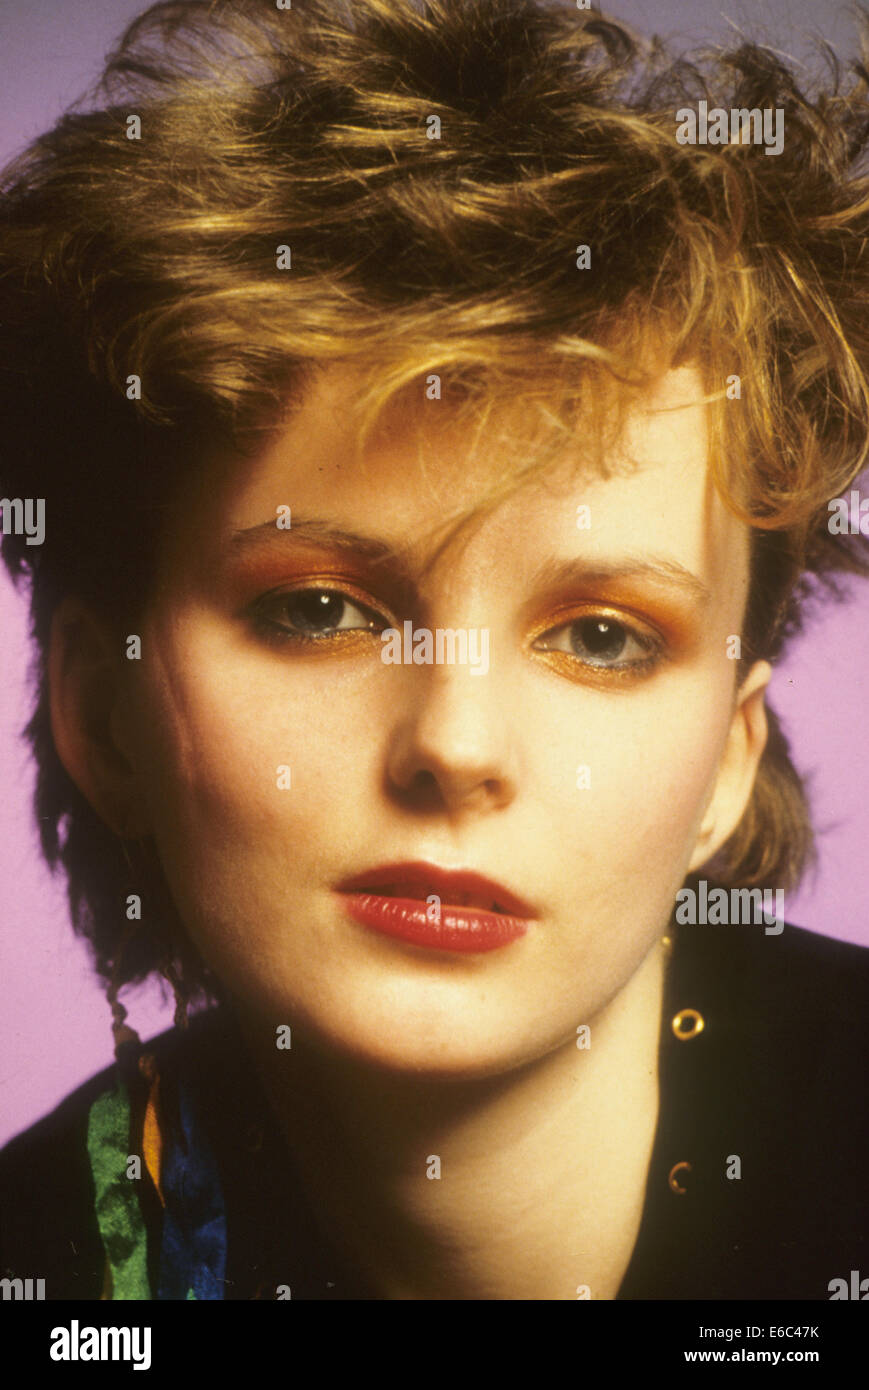 ALTERED IMAGES photo de promotion de la chanteuse Claire Grogan environ 1982 Photo Stock